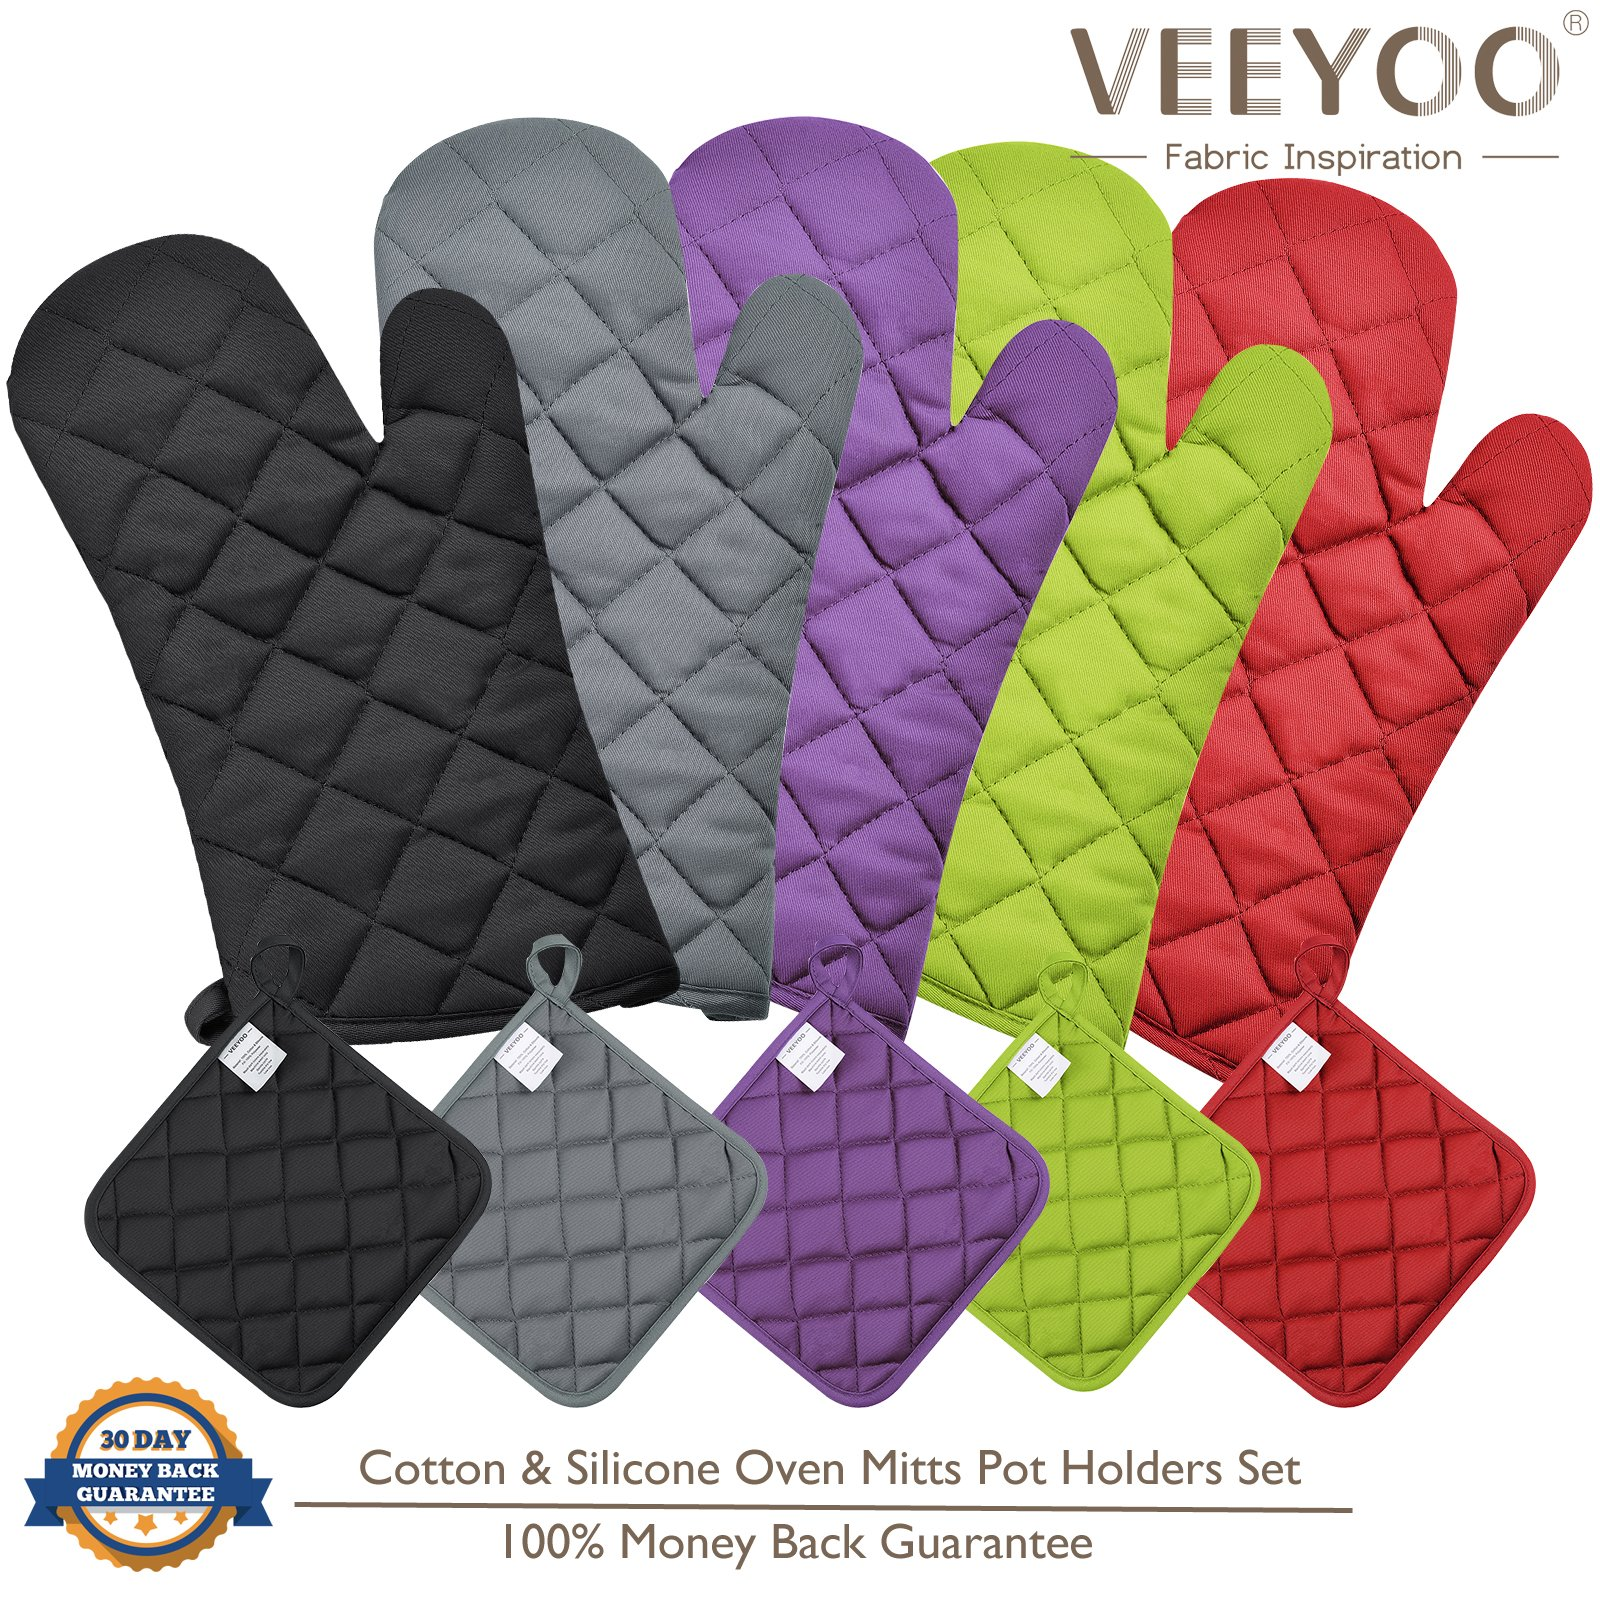 VEEYOO Cotton Oven Mitts Pot Holders Set - Kitchen Silicone Oven Mitt Heat Resistant, Non-slip Grip Oven Gloves Potholder 3 Packs Cooking, Baking & BBQ, Purple by VEEYOO (Image #8)